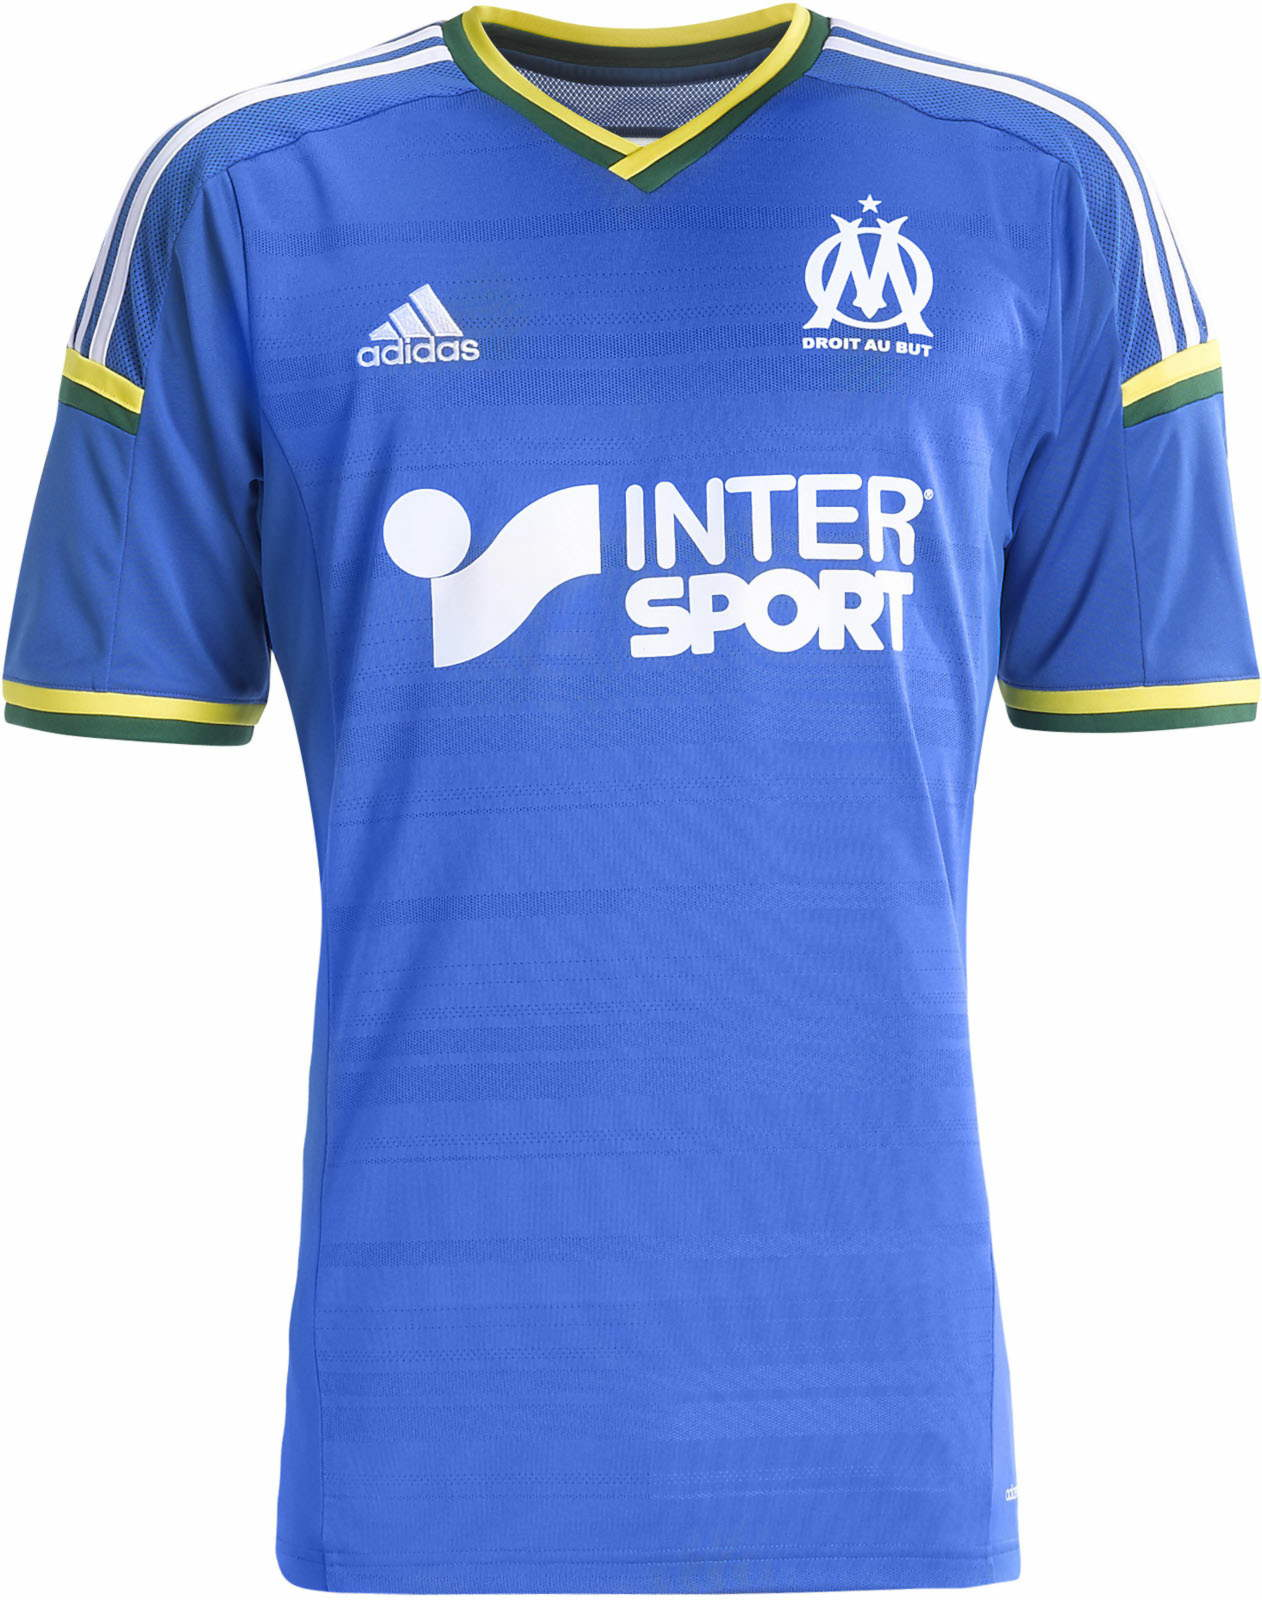 save off b8ed2 77798 olympique marseille jersey